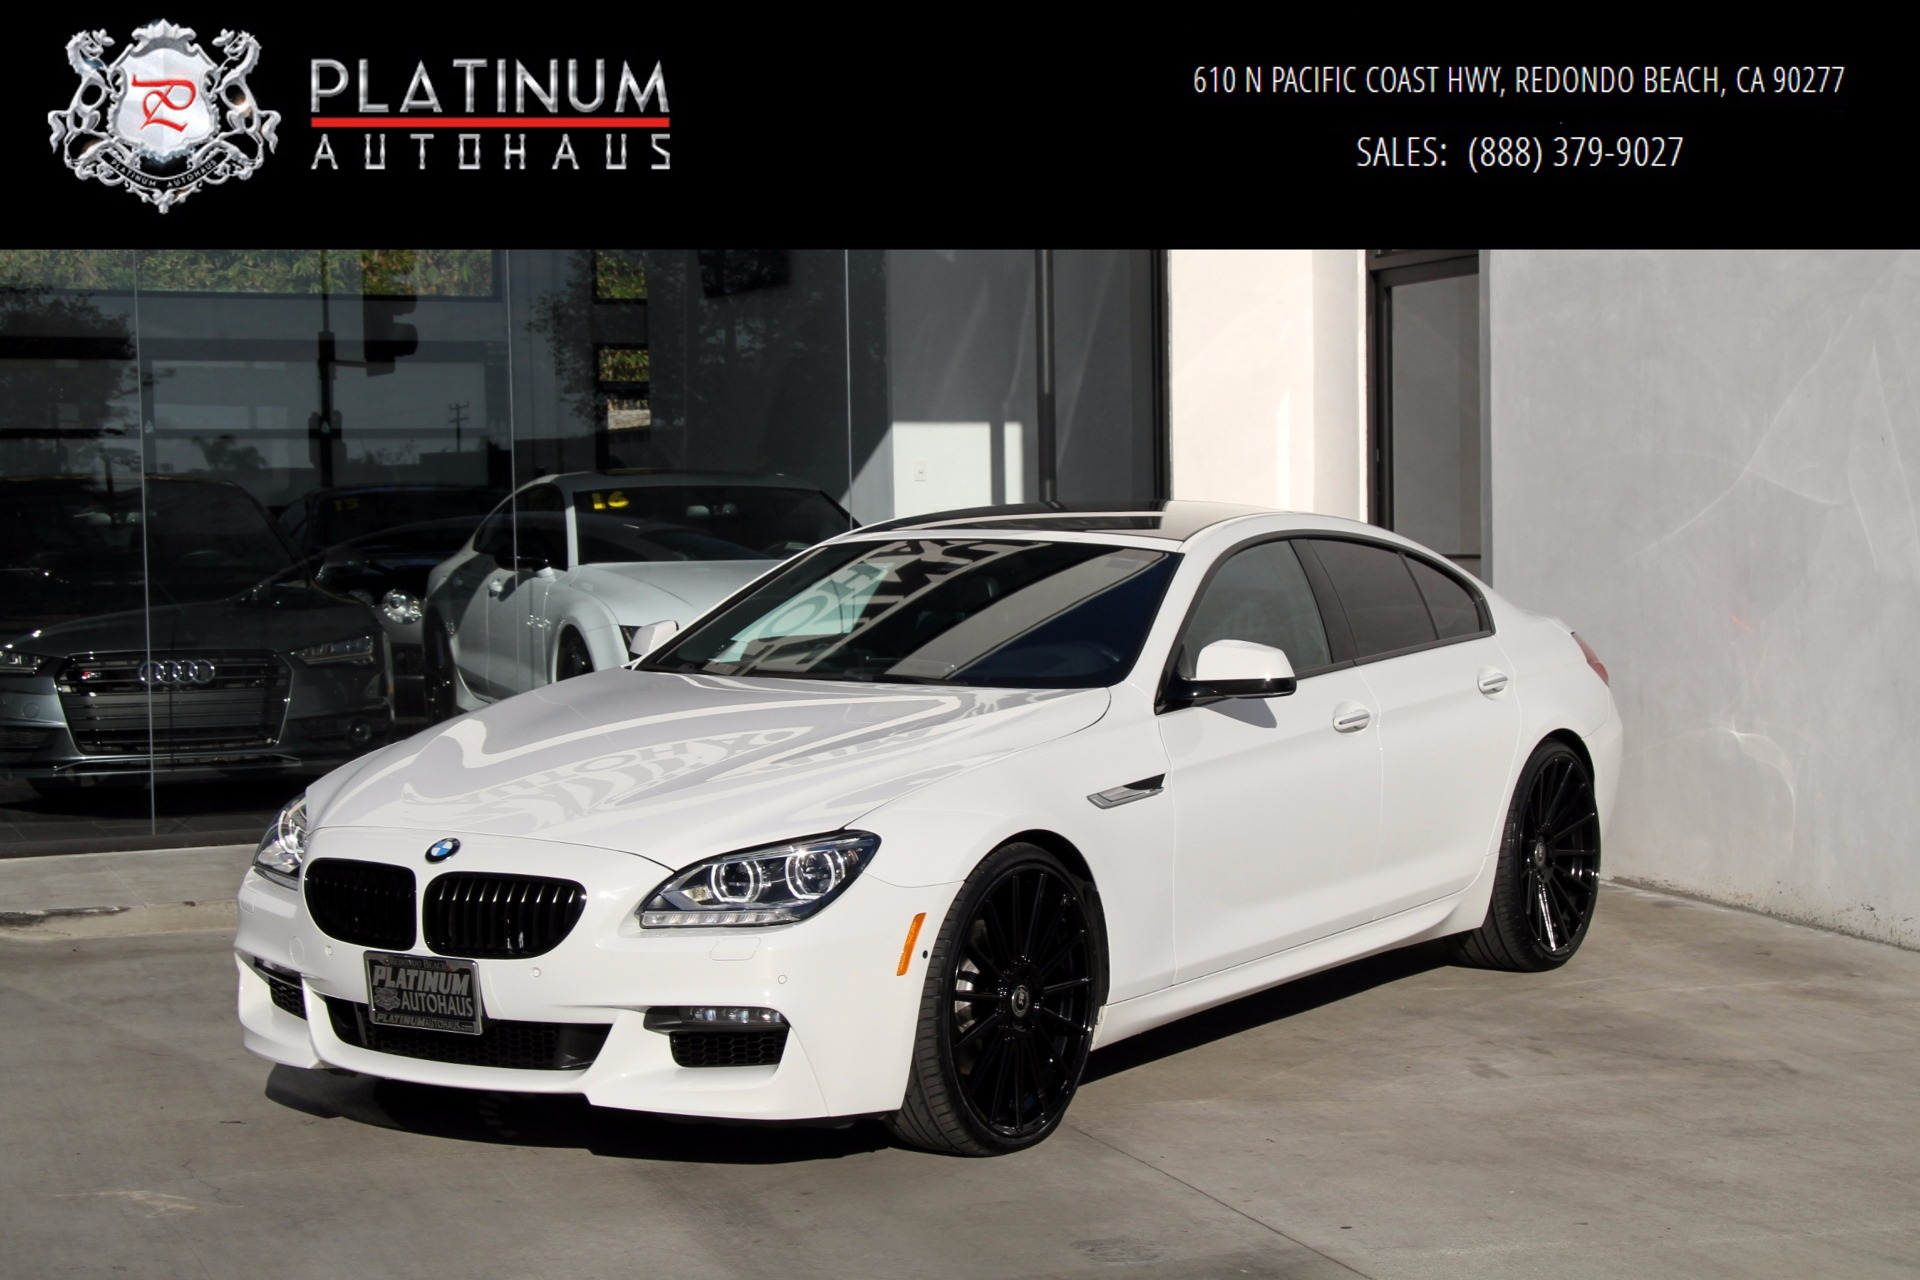 Bmw Dealership Near Me >> 2015 BMW 6 Series 650i Gran Coupe Stock # 6043 for sale near Redondo Beach, CA | CA BMW Dealer